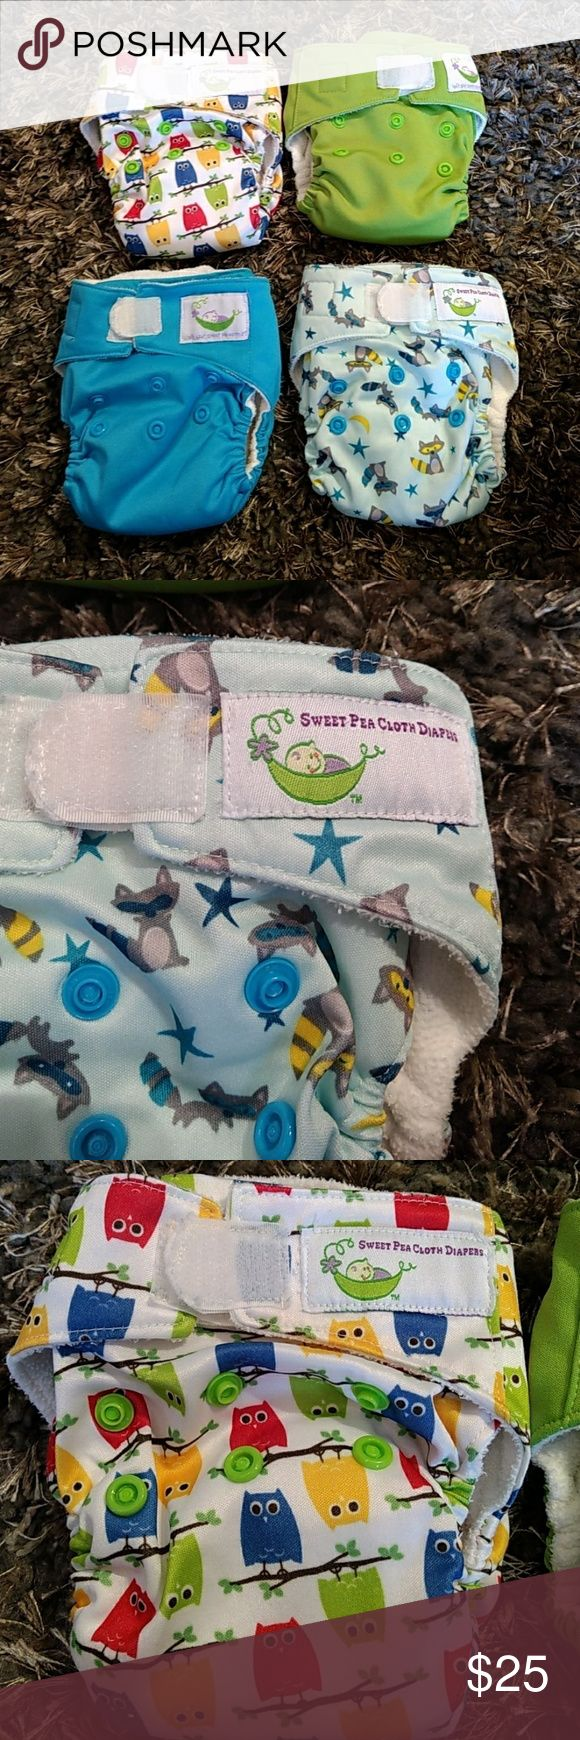 Sweet Pea newborn all-in-one cloth diapers Lot of for newborn size all-in-one cloth diapers. Fits sizes 6 to 12 pounds. Velcro Fasteners in good used condition. Each diaper comes with an additional 2 layer microfiber insert for additional absorption. Good used condition. Cute gender-neutral prints Sweetpea Other